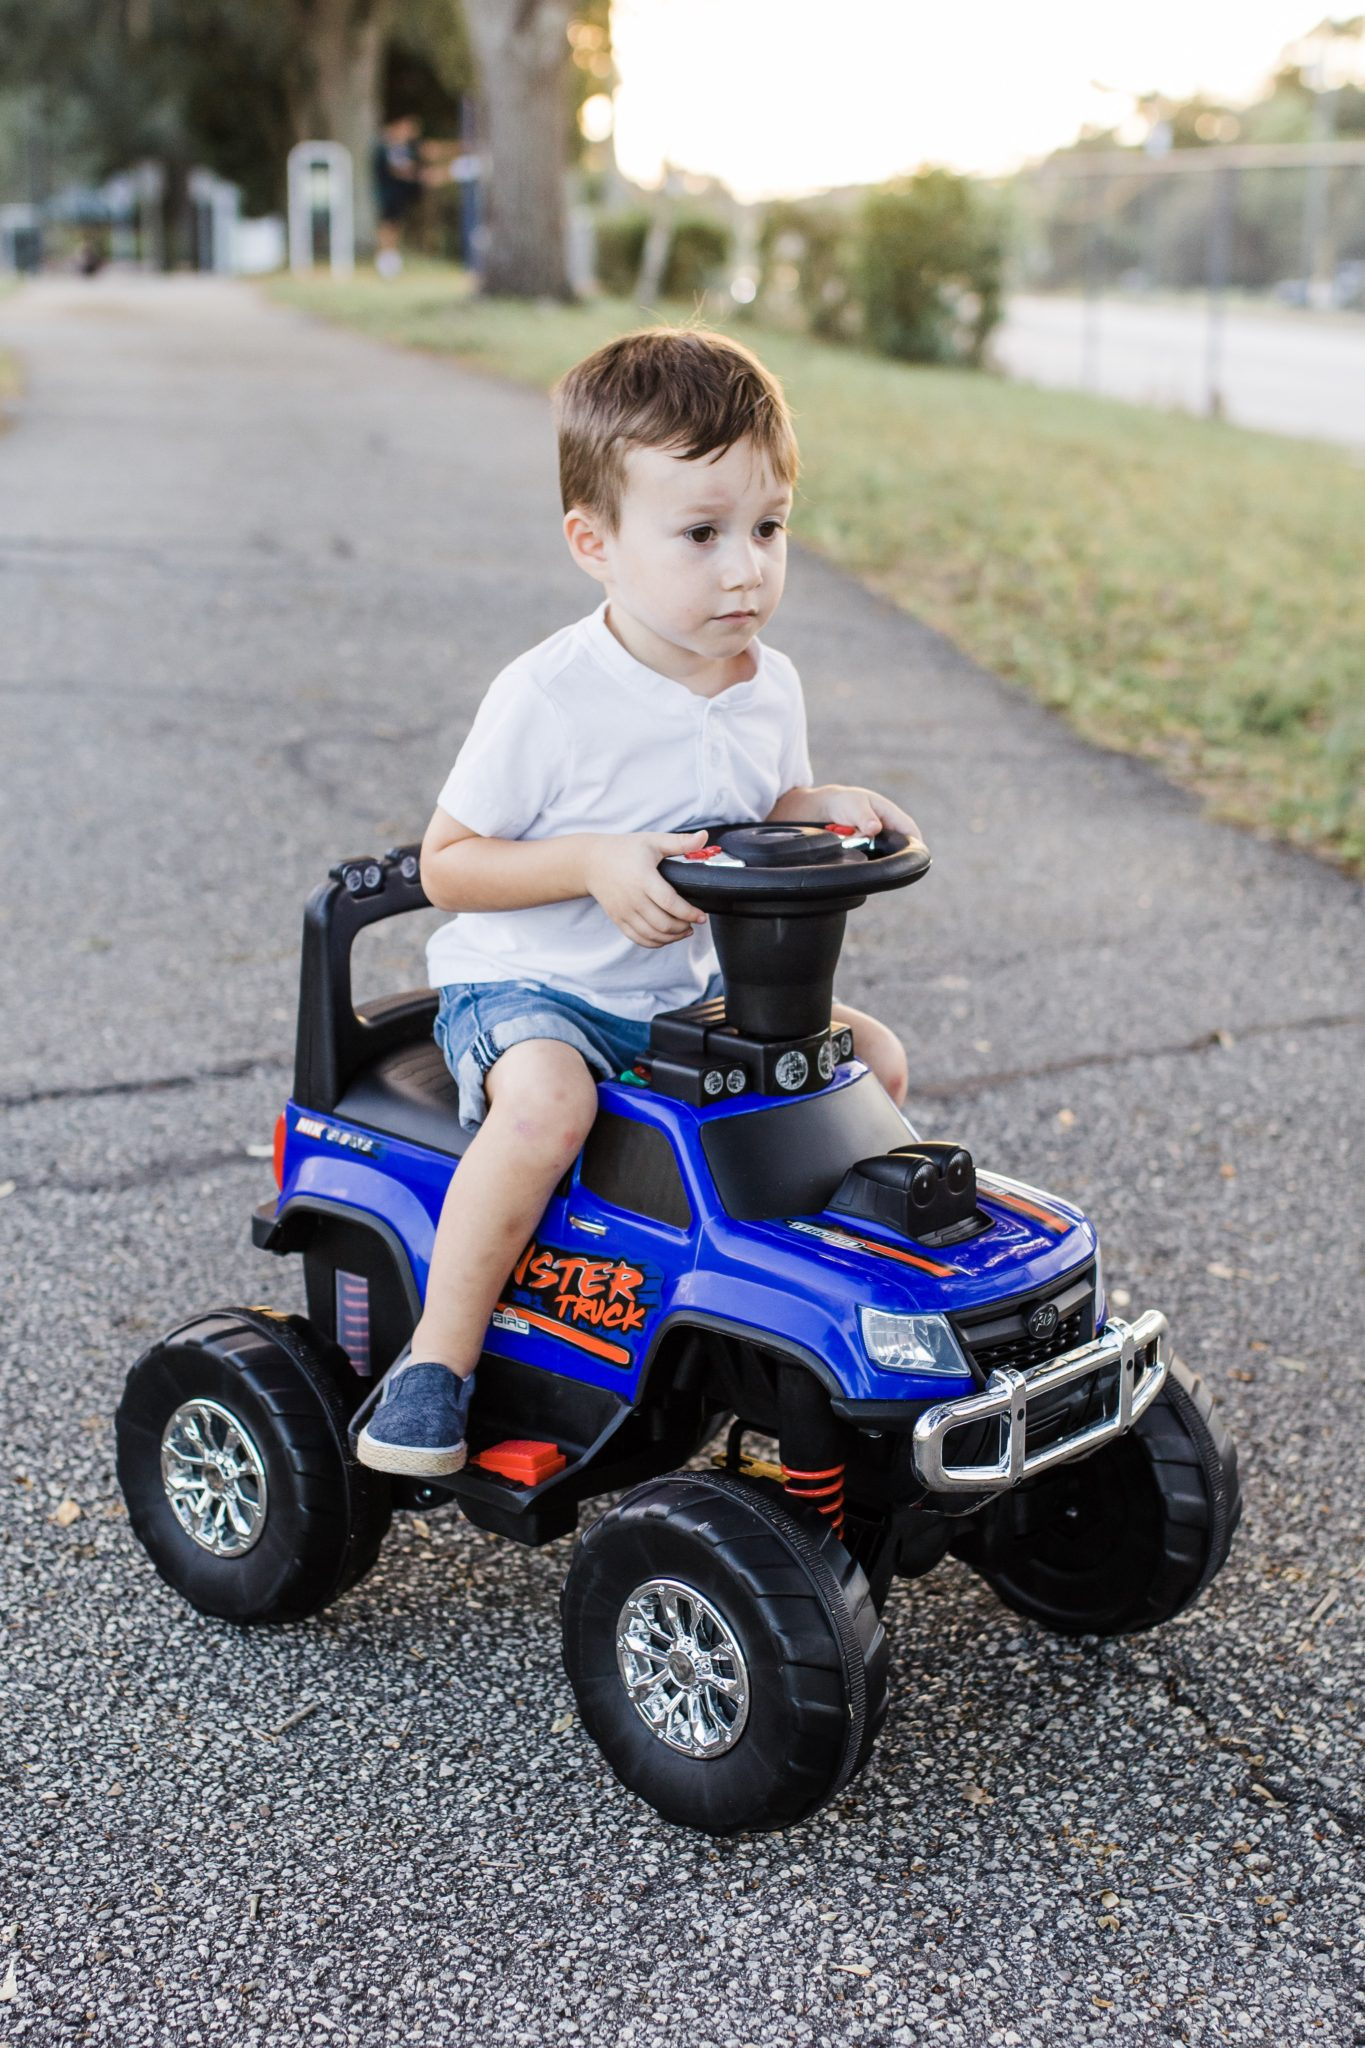 Huffy Monster RV, toys for boys 3-7, preschool kids toys, gift ideas for boys, remote controlled car, ride on toys for age 3, Tampa parenting blog mothers blog motherhood blog Florida travel blogger travel influencer healthy mom blogger spring hill florida lifestyle parenting blog best mom blog 2018